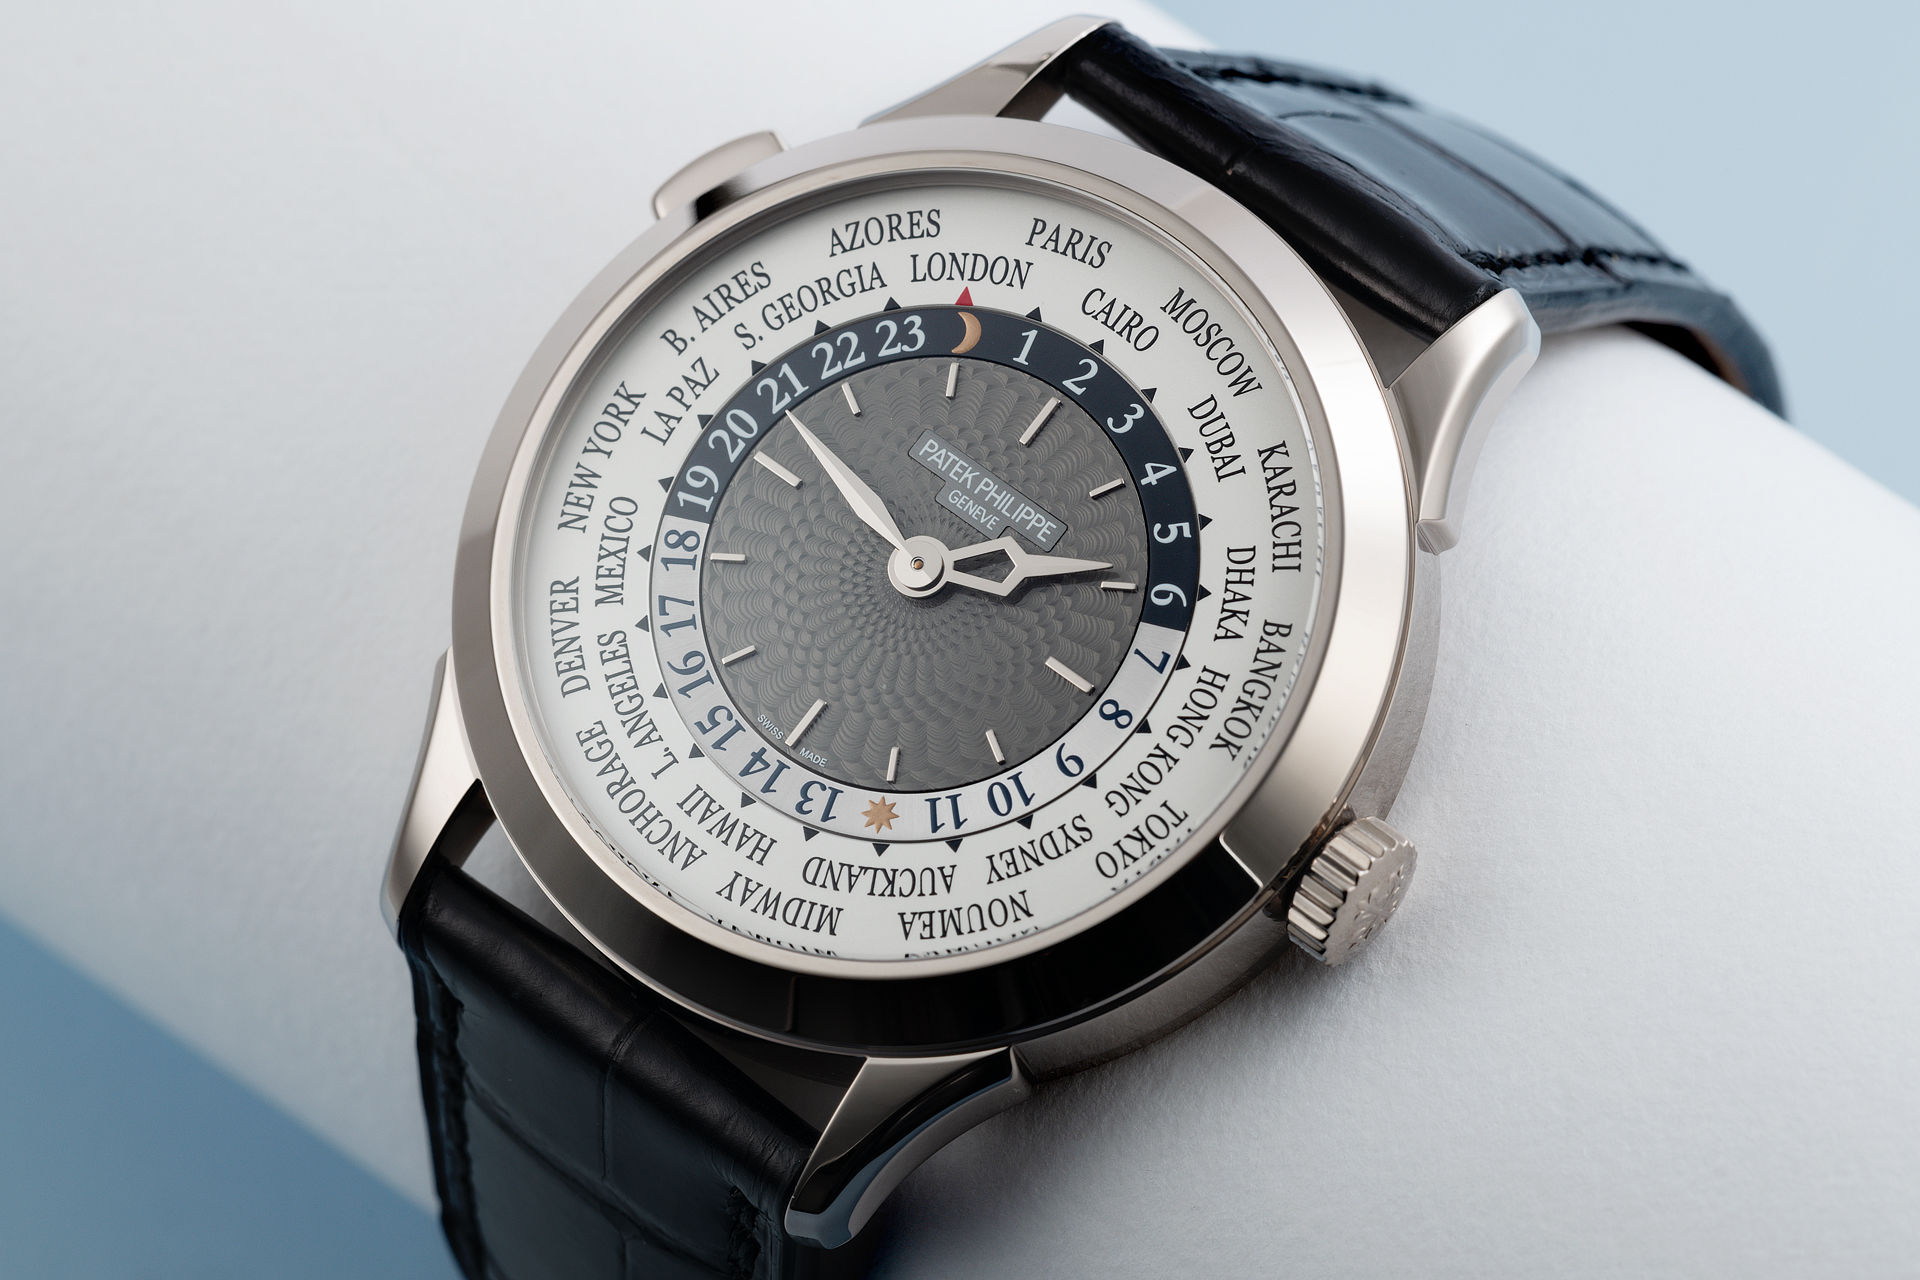 Latest Model 'Patek Warranty' | ref 5230G-001 | Patek Philippe World Time